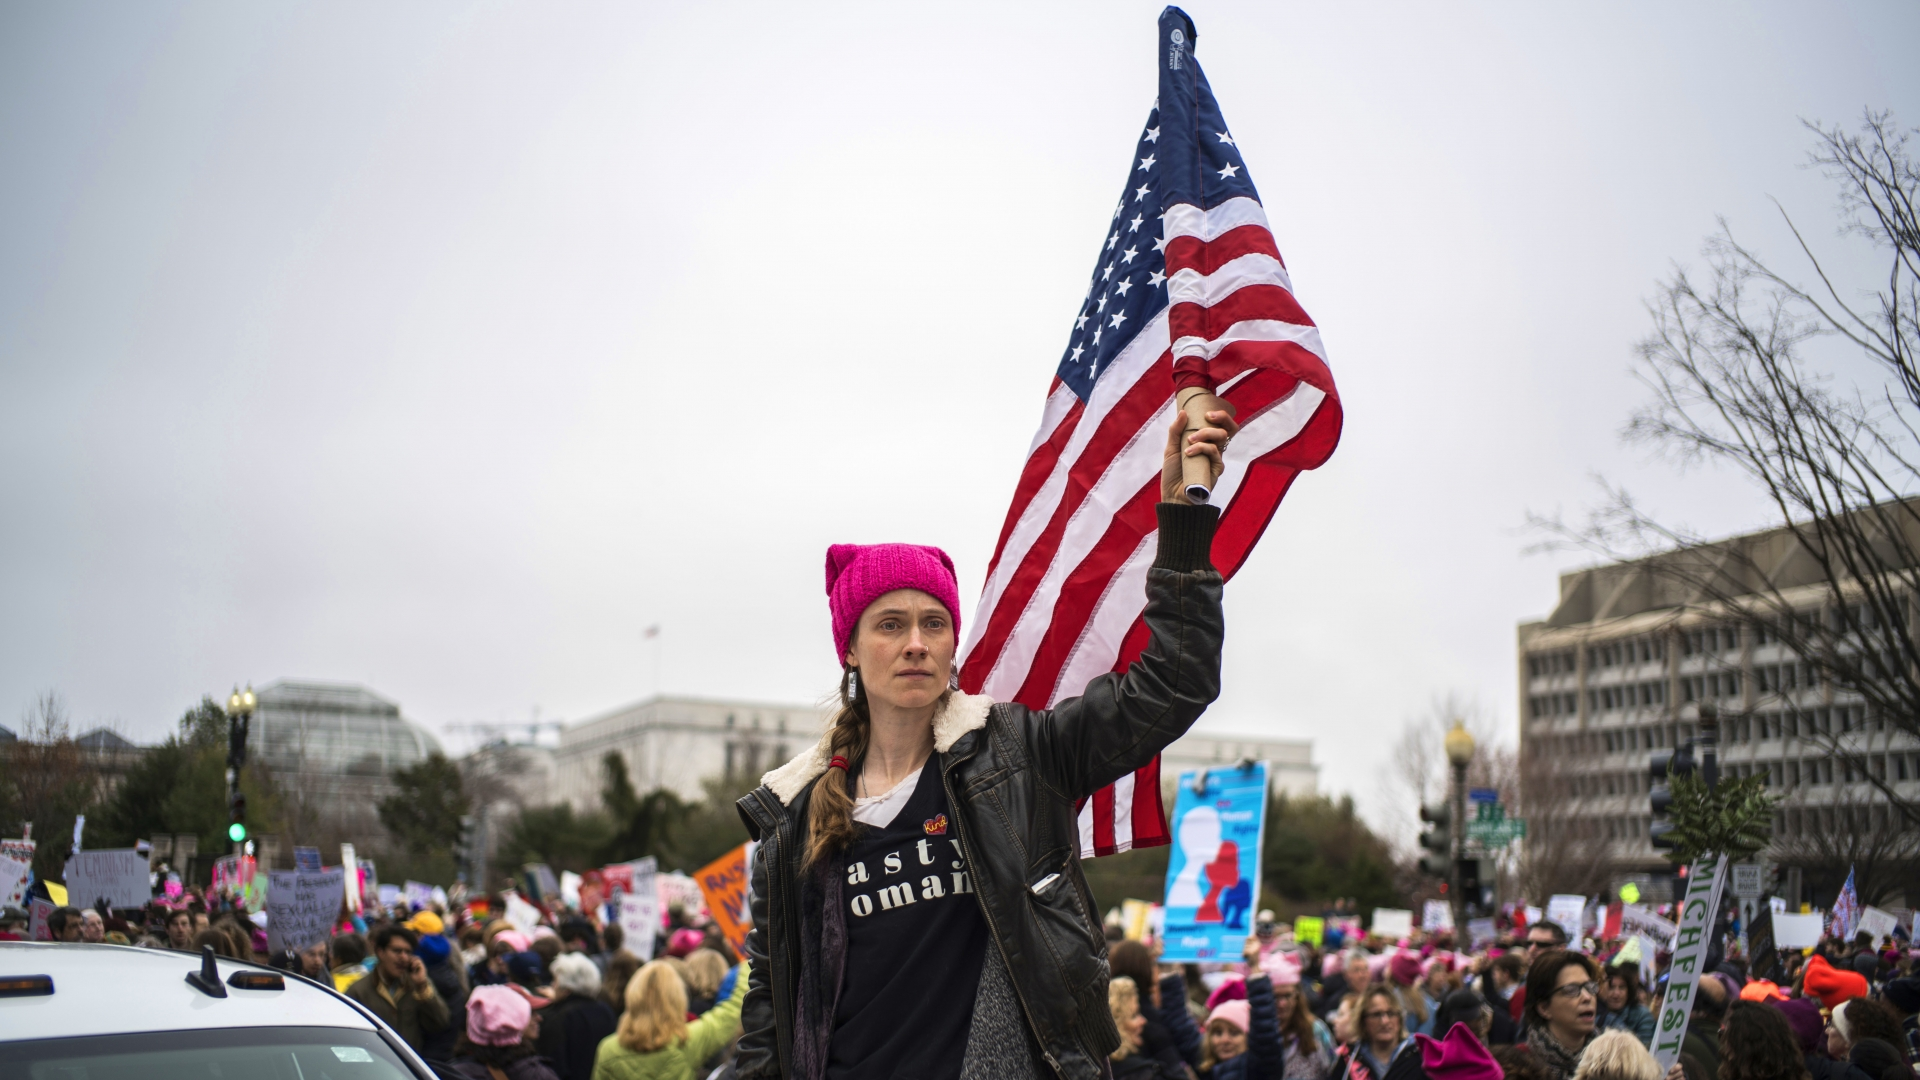 Women's March protesters, one day after the inauguration of President Donald Trump, January 21, 2017. (Credit: Michael Christopher Brown/Magnum Photos)